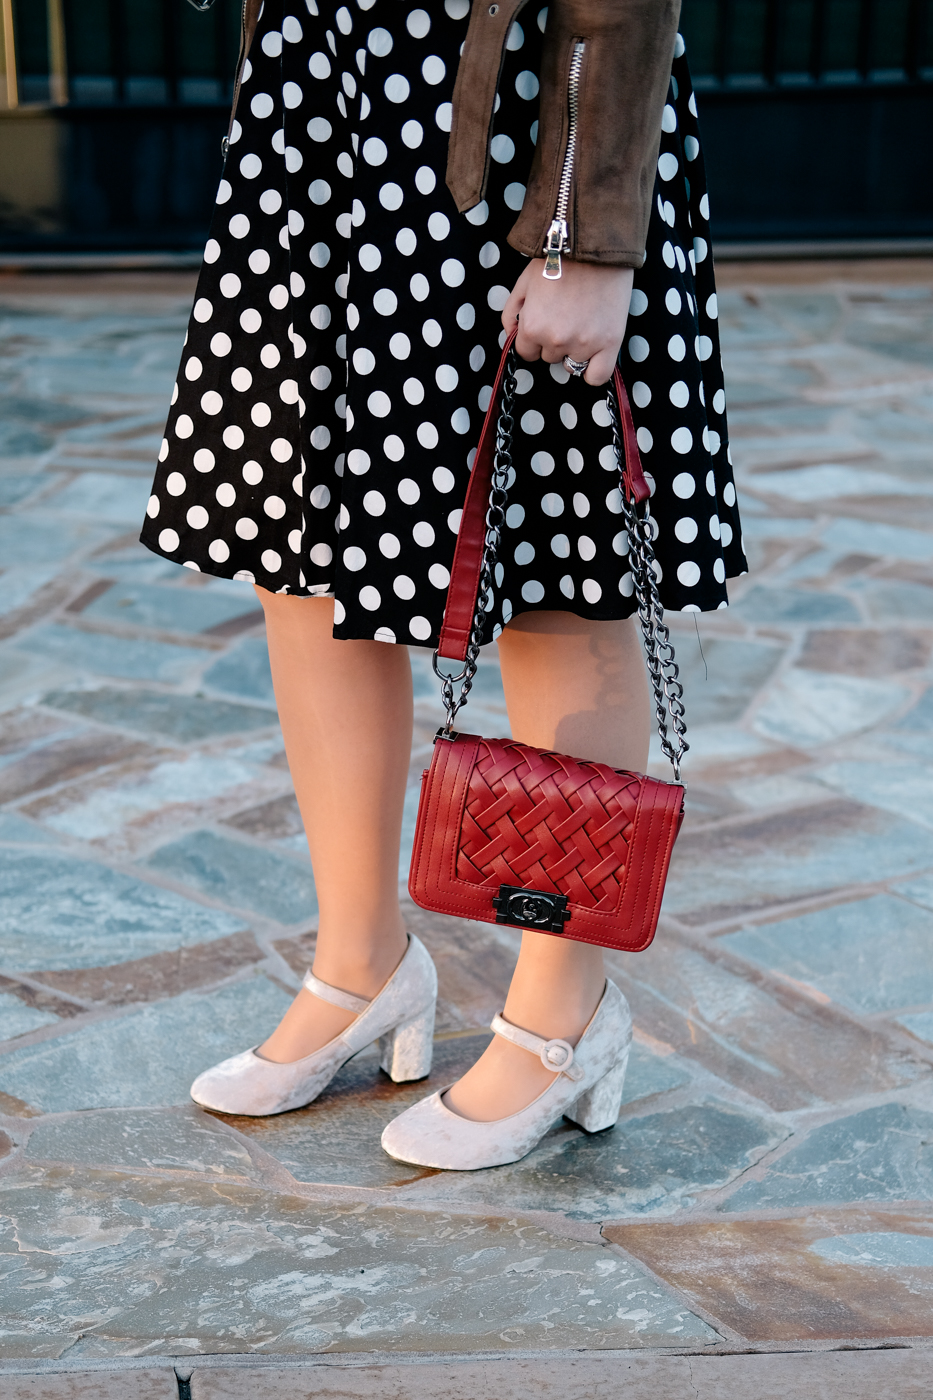 Debora Dahl velvet shoes and polka dot dress